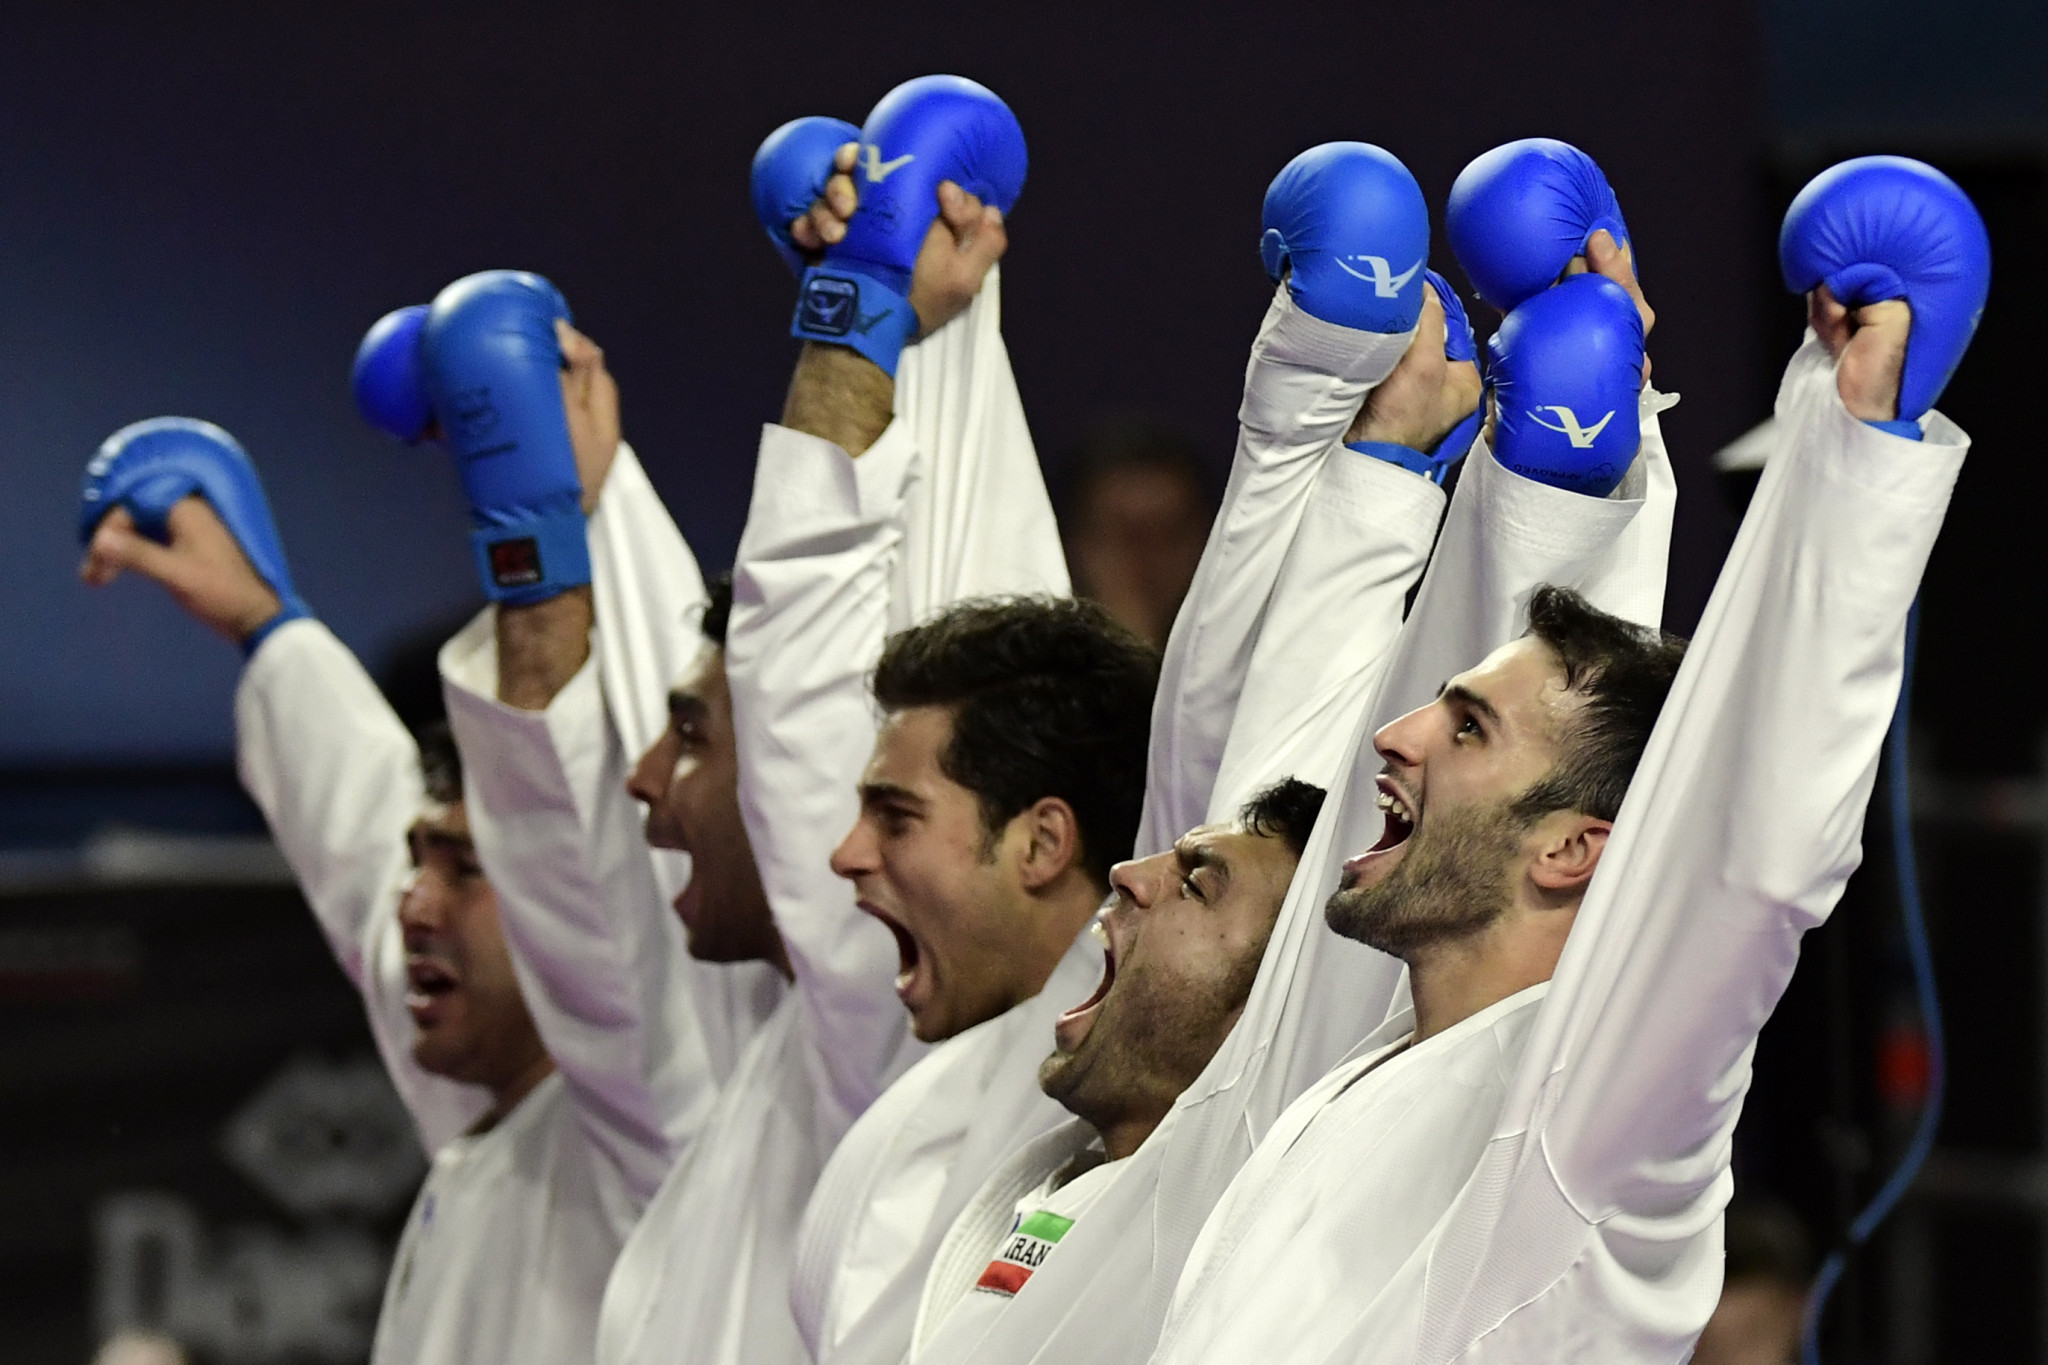 Karate World Championships: Final day of medal action